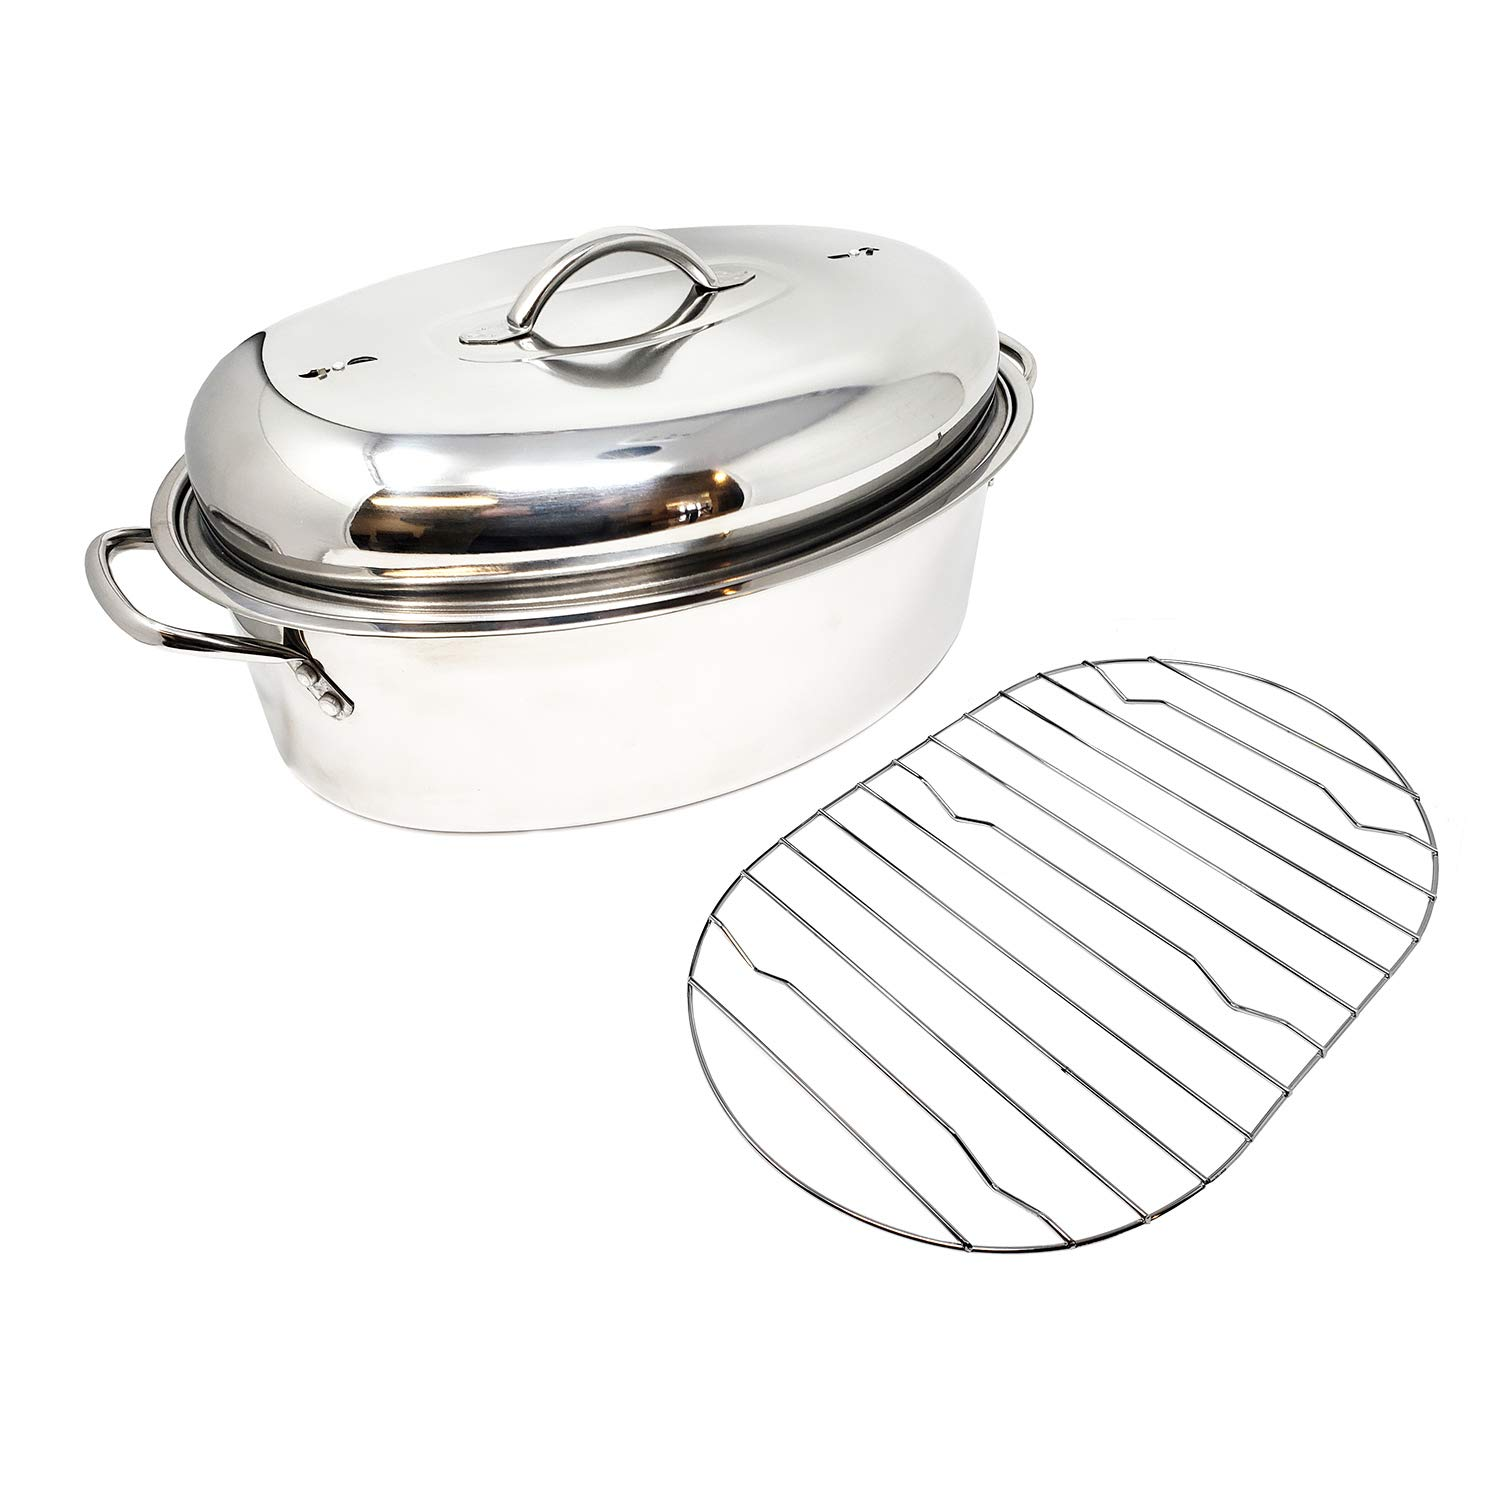 Stainless Steel Oval Lidded Roaster Pan Extra Large & Lightweight | With Induction Lid & Wire Rack | Multi-Purpose Oven Cookware High Dome | Meat Joints Chicken Vegetables 9.5 Quart Capacity by LavoHome (Image #1)